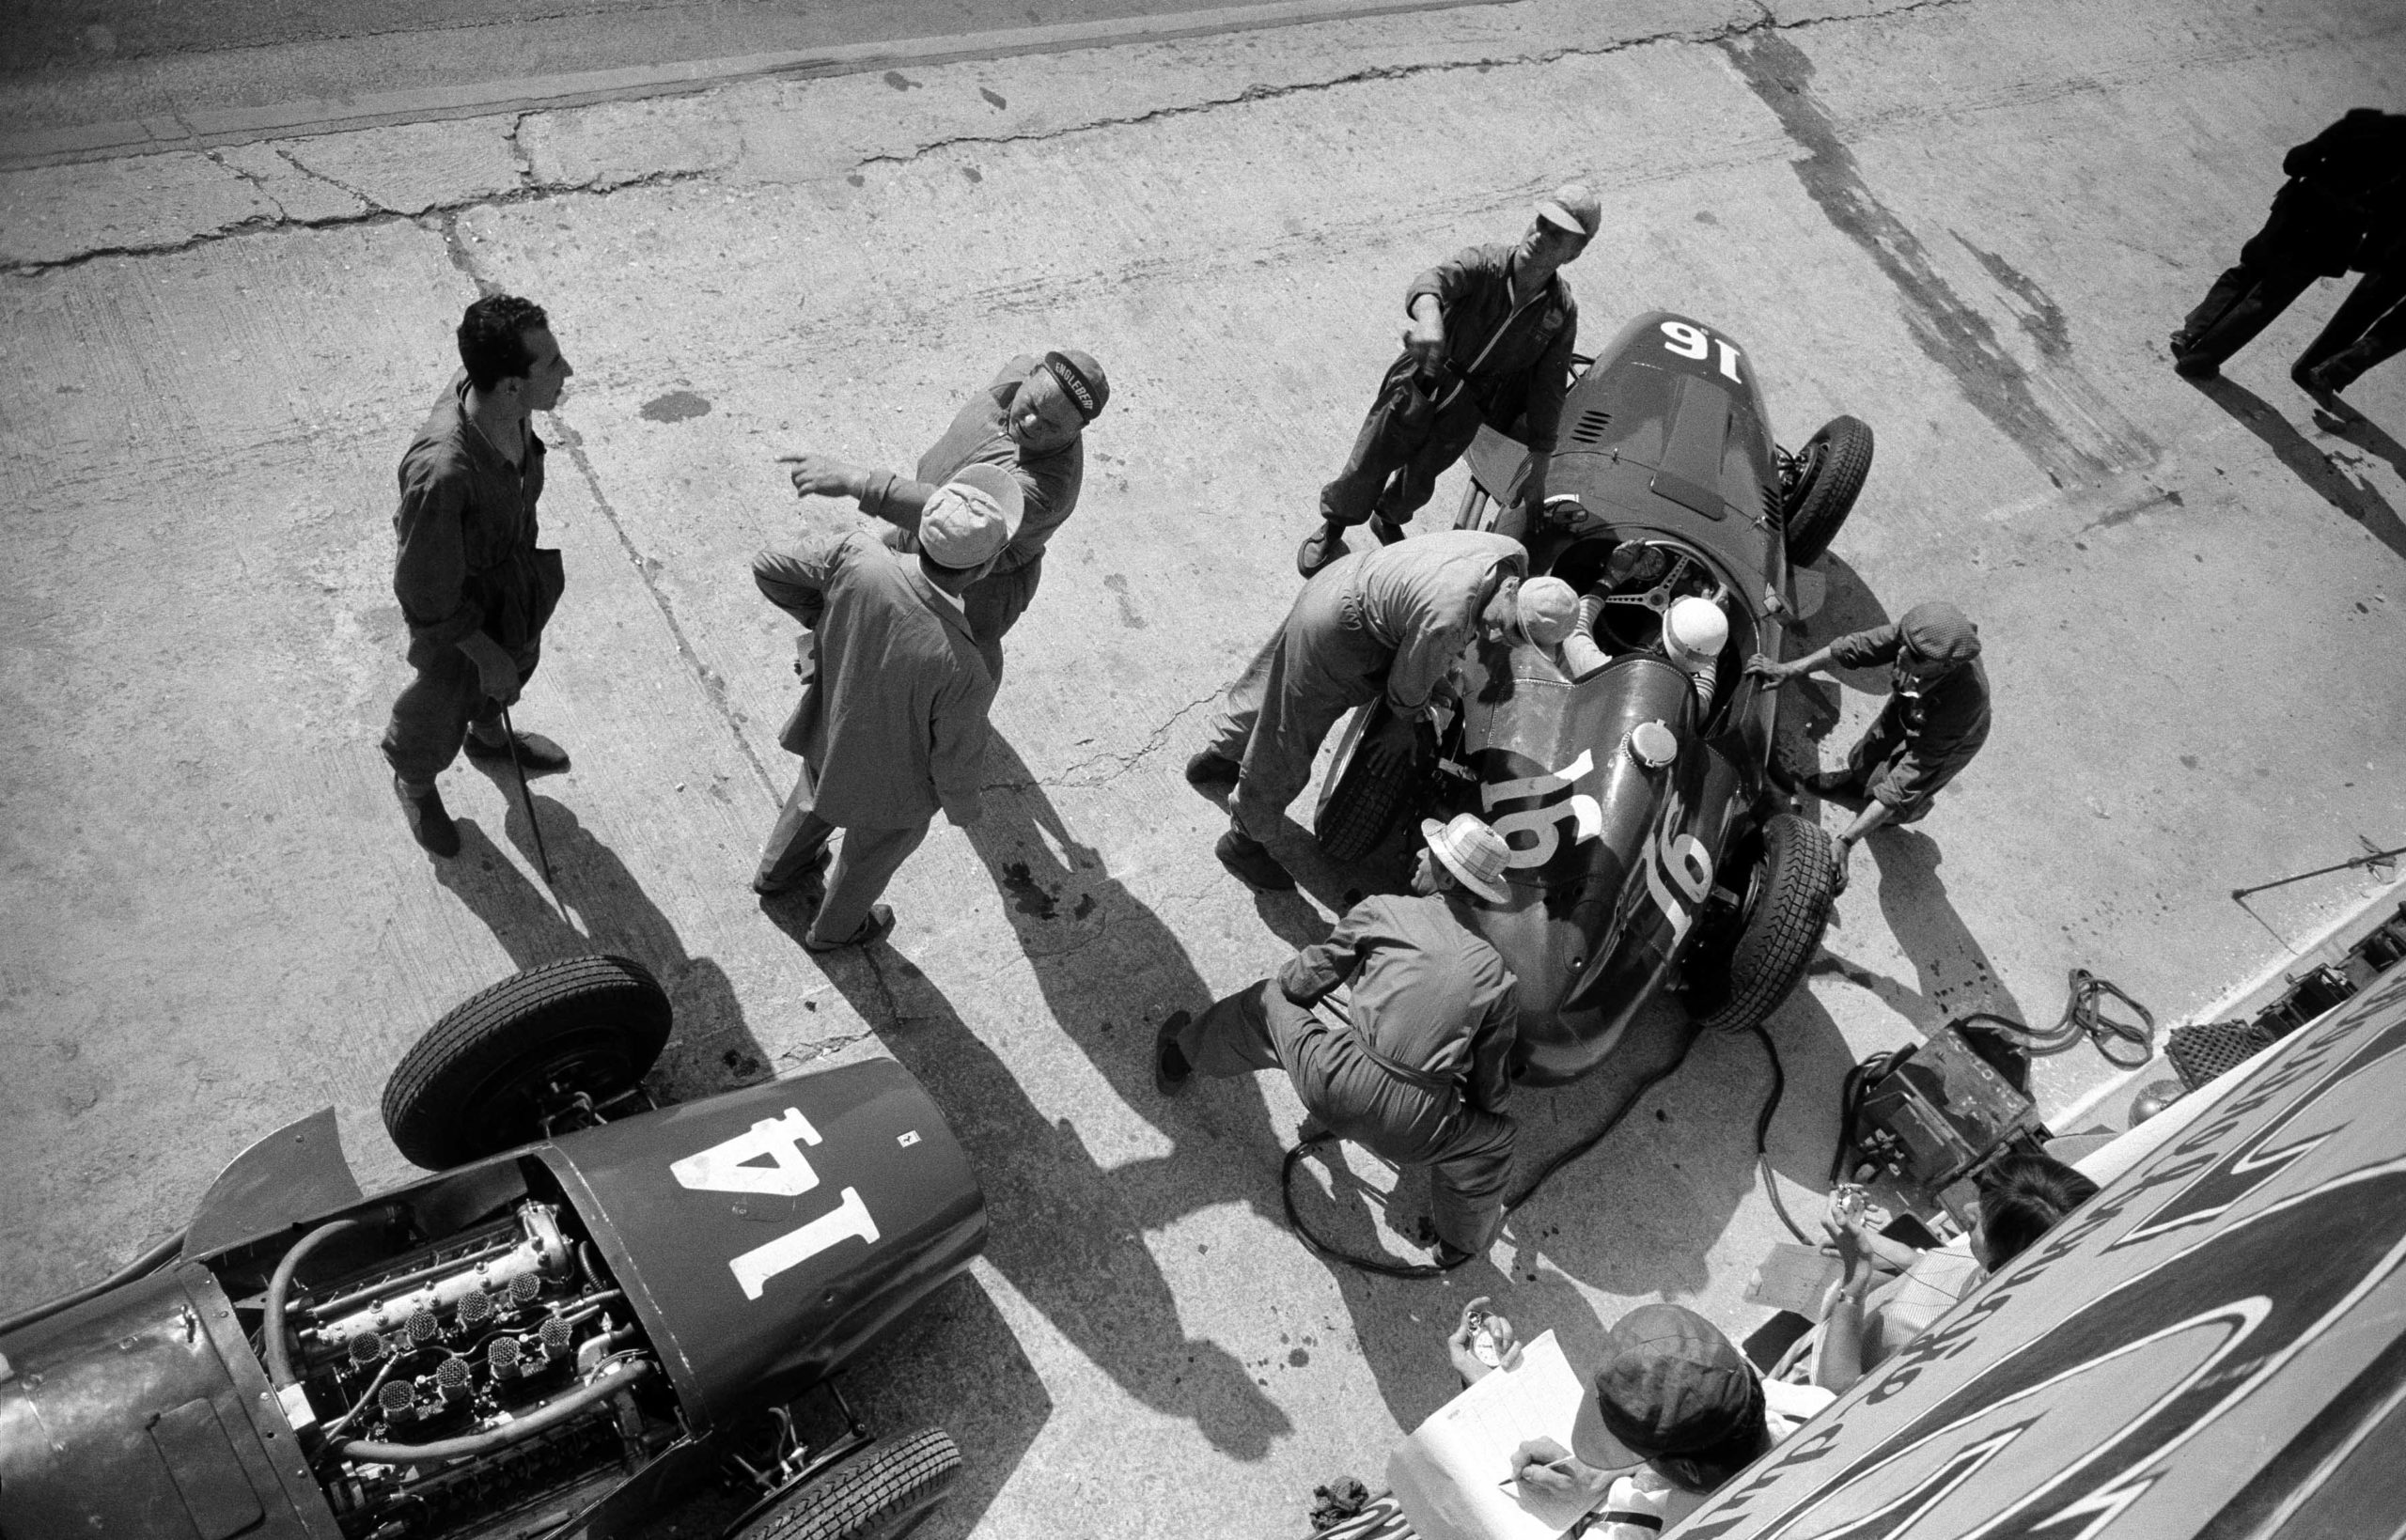 The French Grand Prix; Rouen-les Essarts, July 7, 1957. Here is another wonderful photograph from the 1957 French Grand Prix taken during practice at the Ferrari pits. N. 16 is the car of Maurice Trintignant which is being just fired up and n. 14 is the car for Mike Hawthorn. Meanwhile, mechanic Luigi Parenti directs the orchestra at center stage! (Photo by Klemantaski Collection/Getty Images)